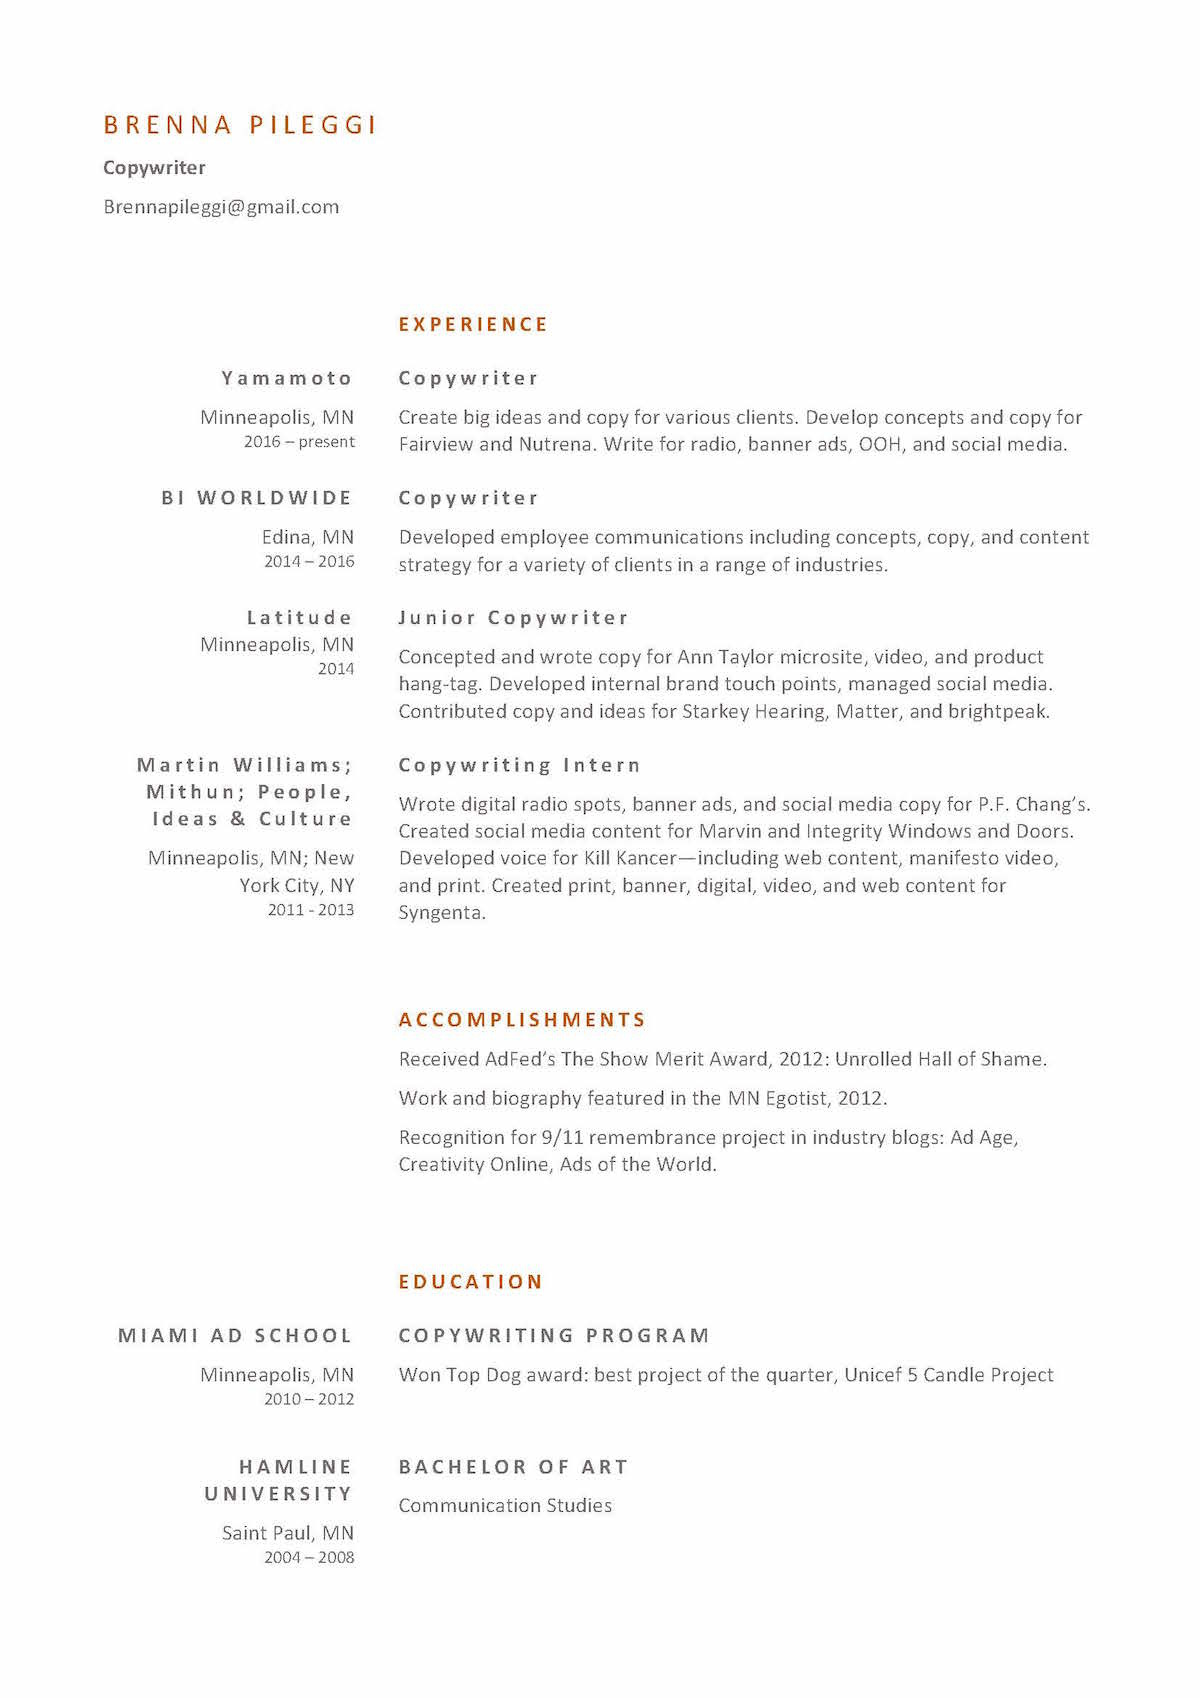 resume copywriter brenna - Sample Ad Copywriter Resume